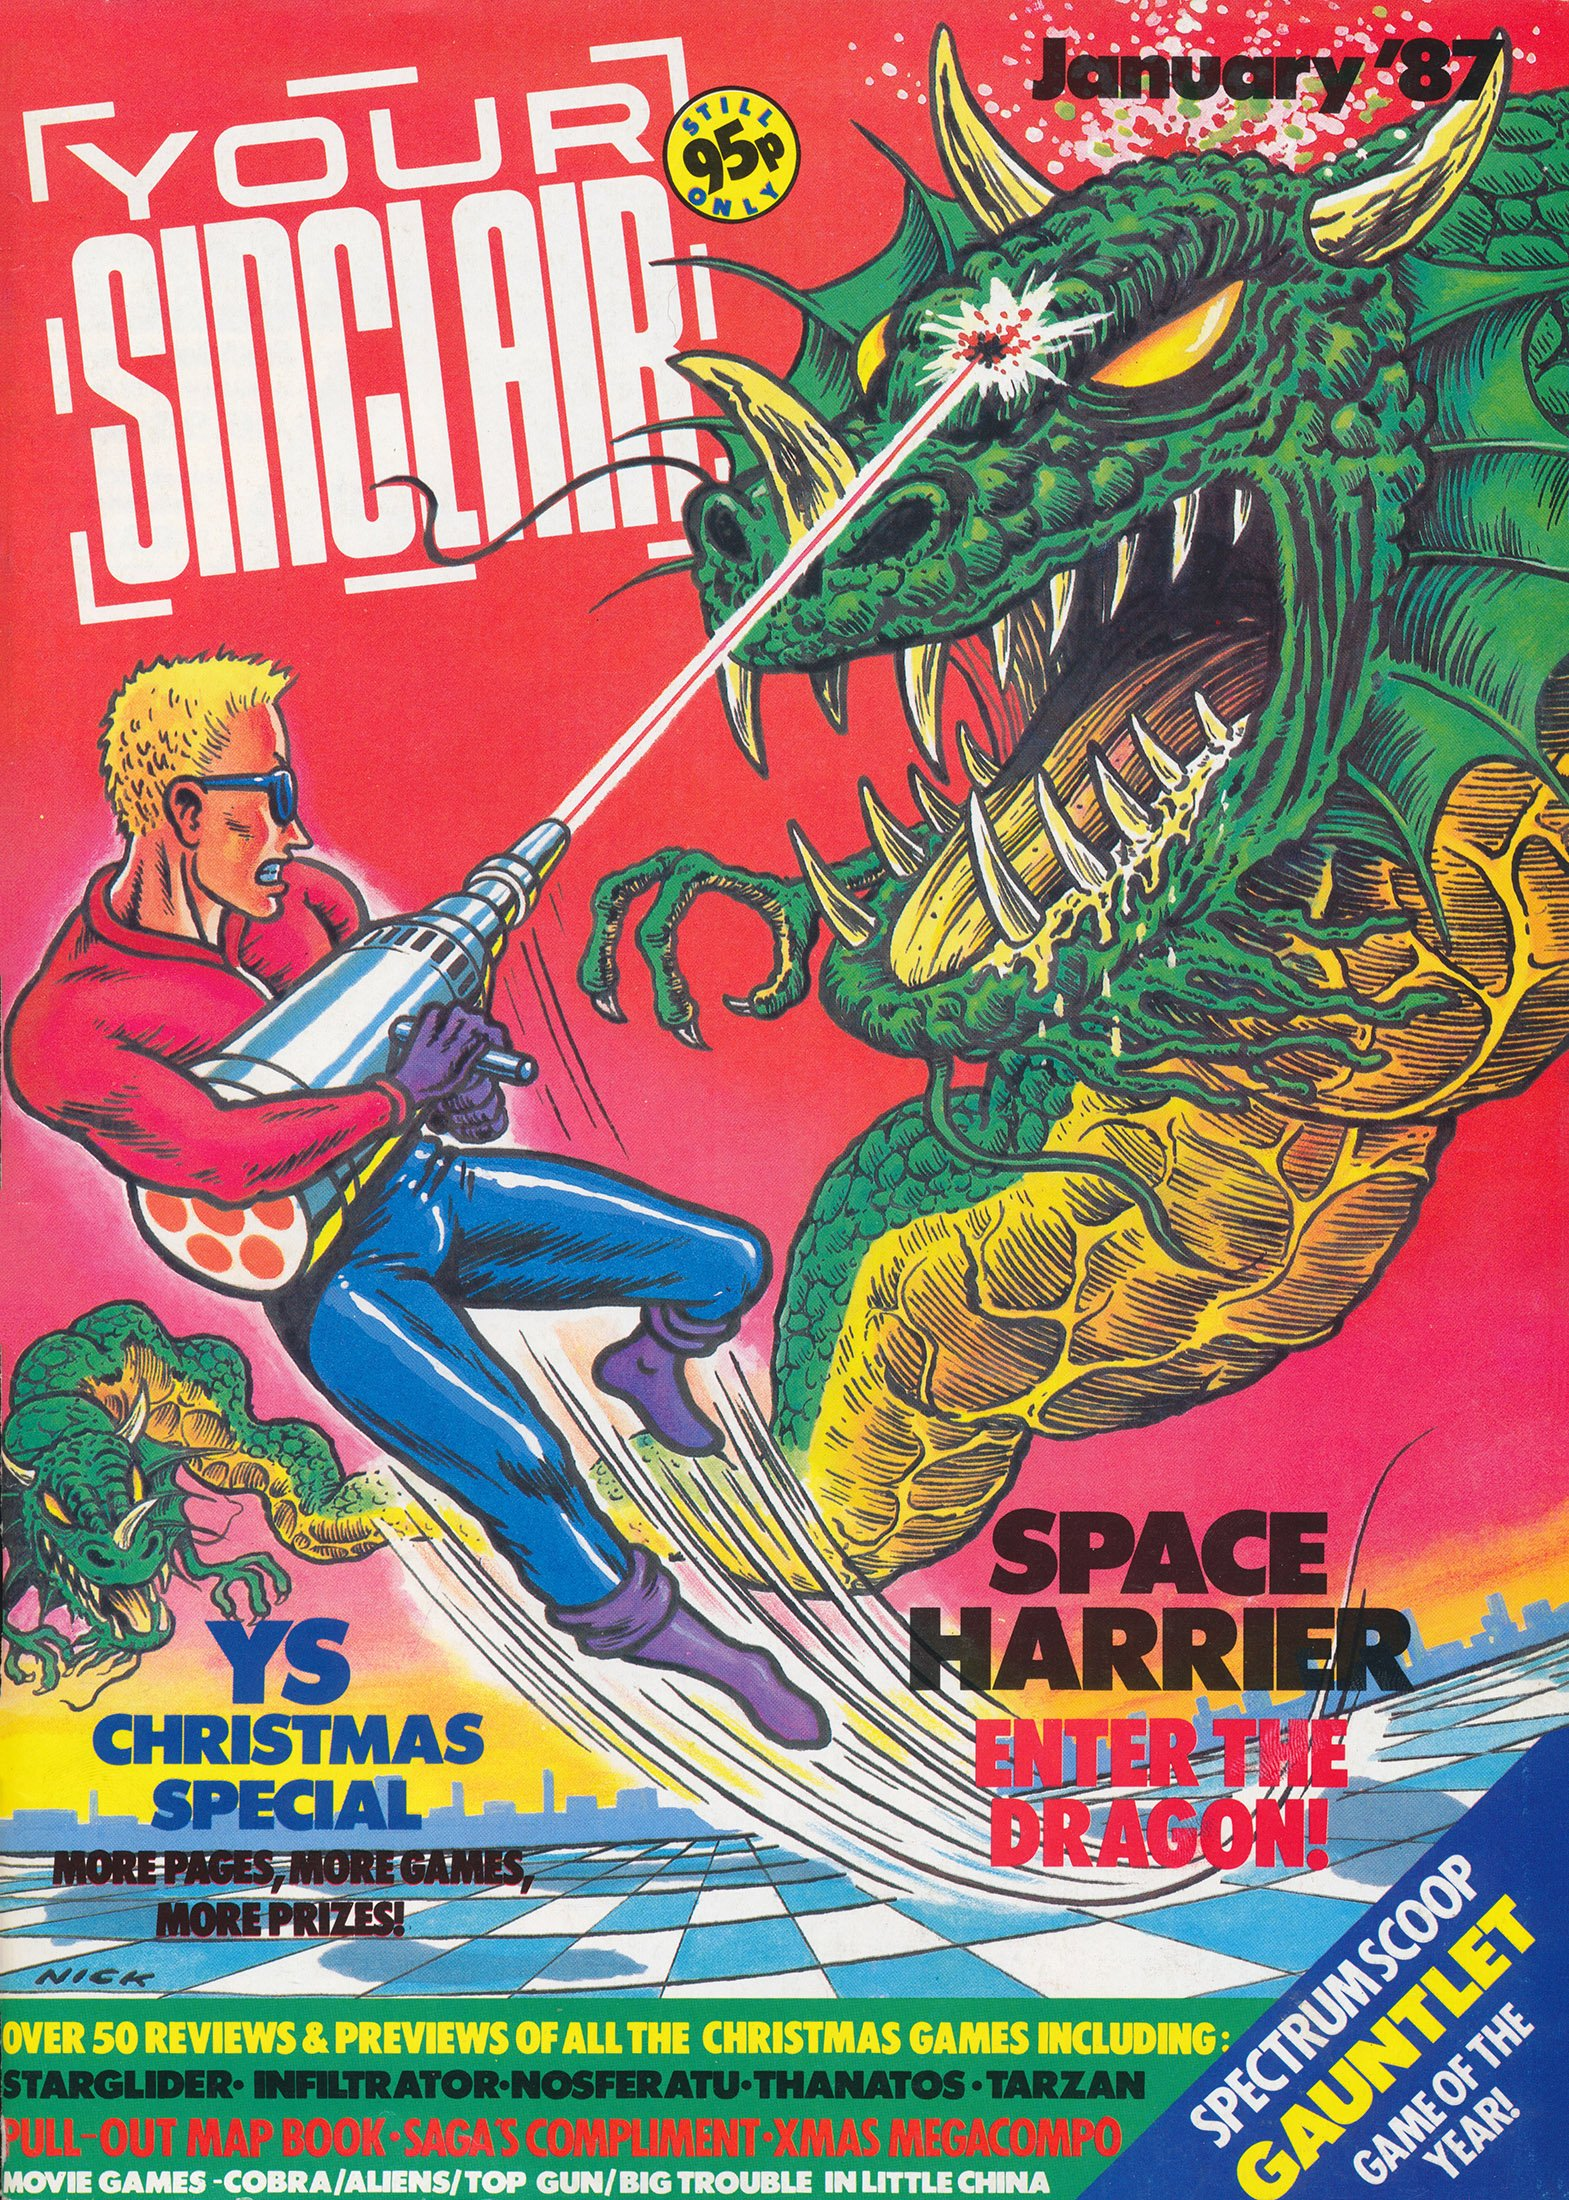 Your Sinclair Issue 13 (January 1987)